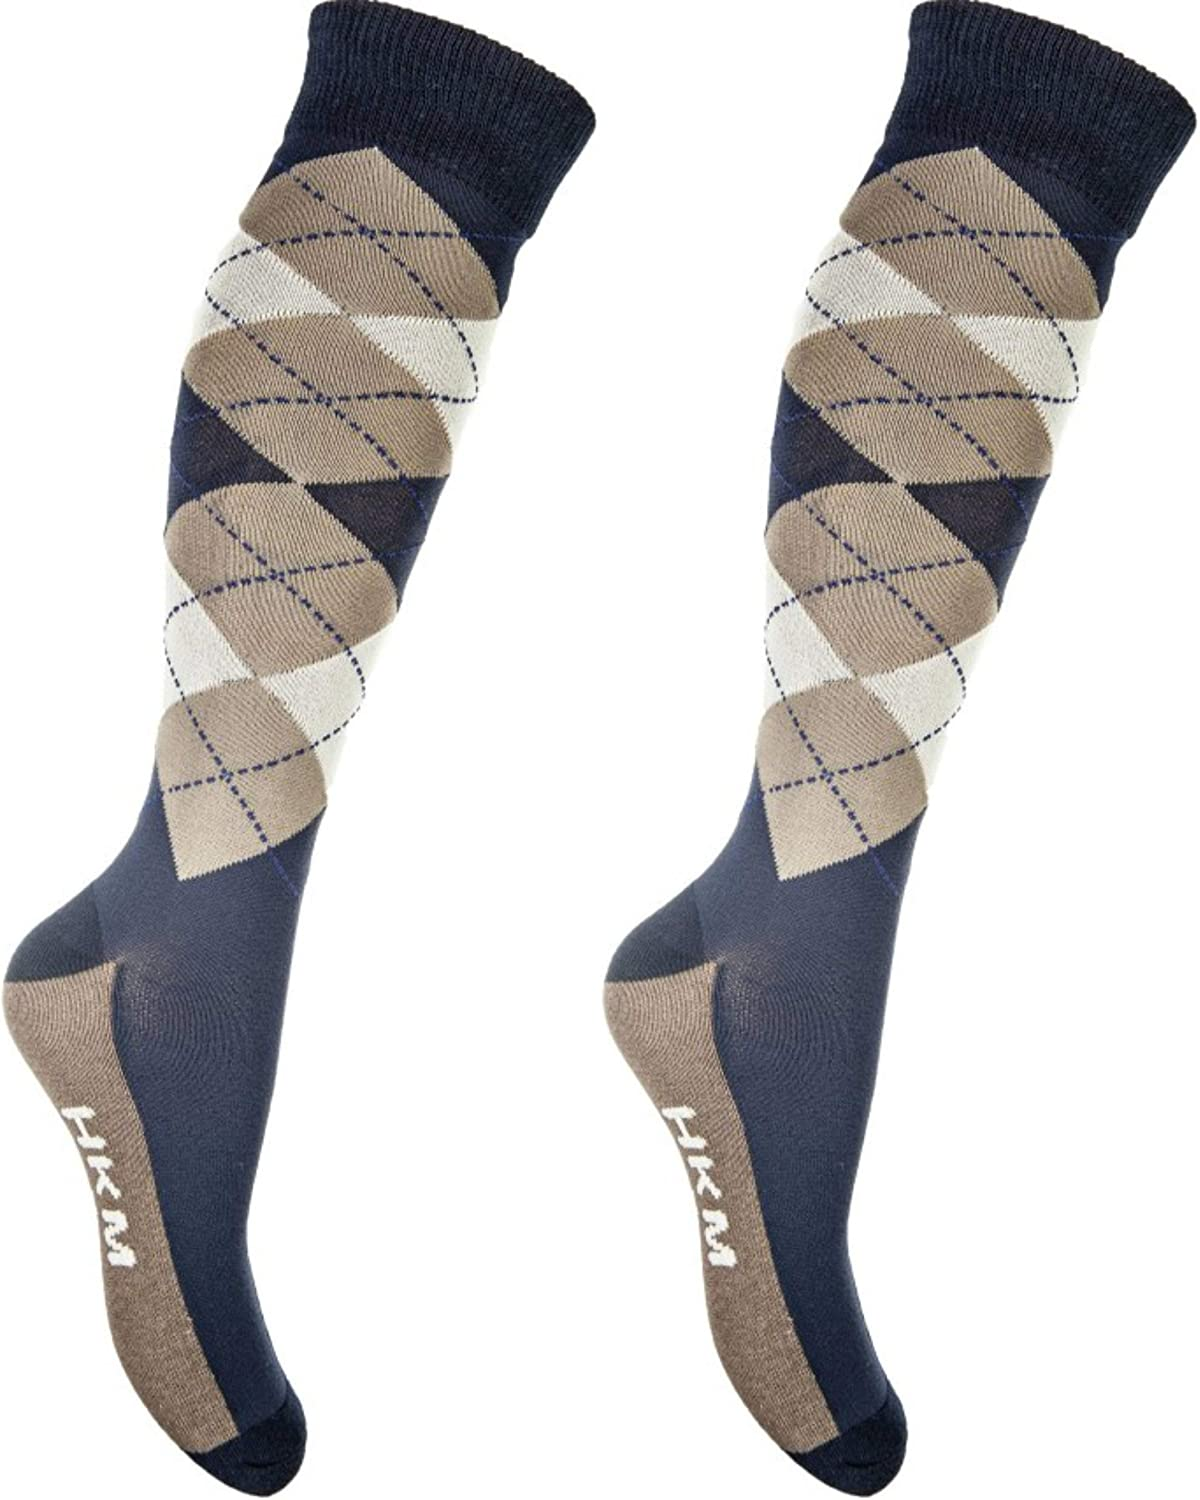 HKM Reitsocken-Check Classico Chaussettes Homme